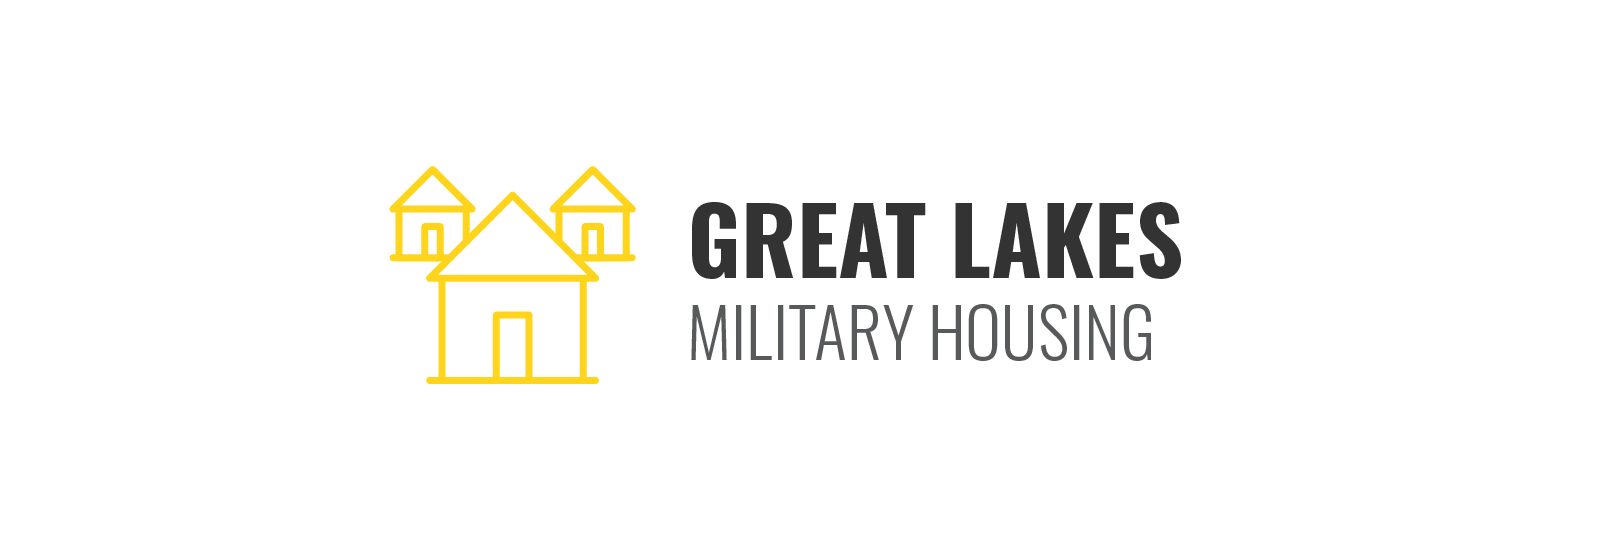 Great Lakes Military Housing